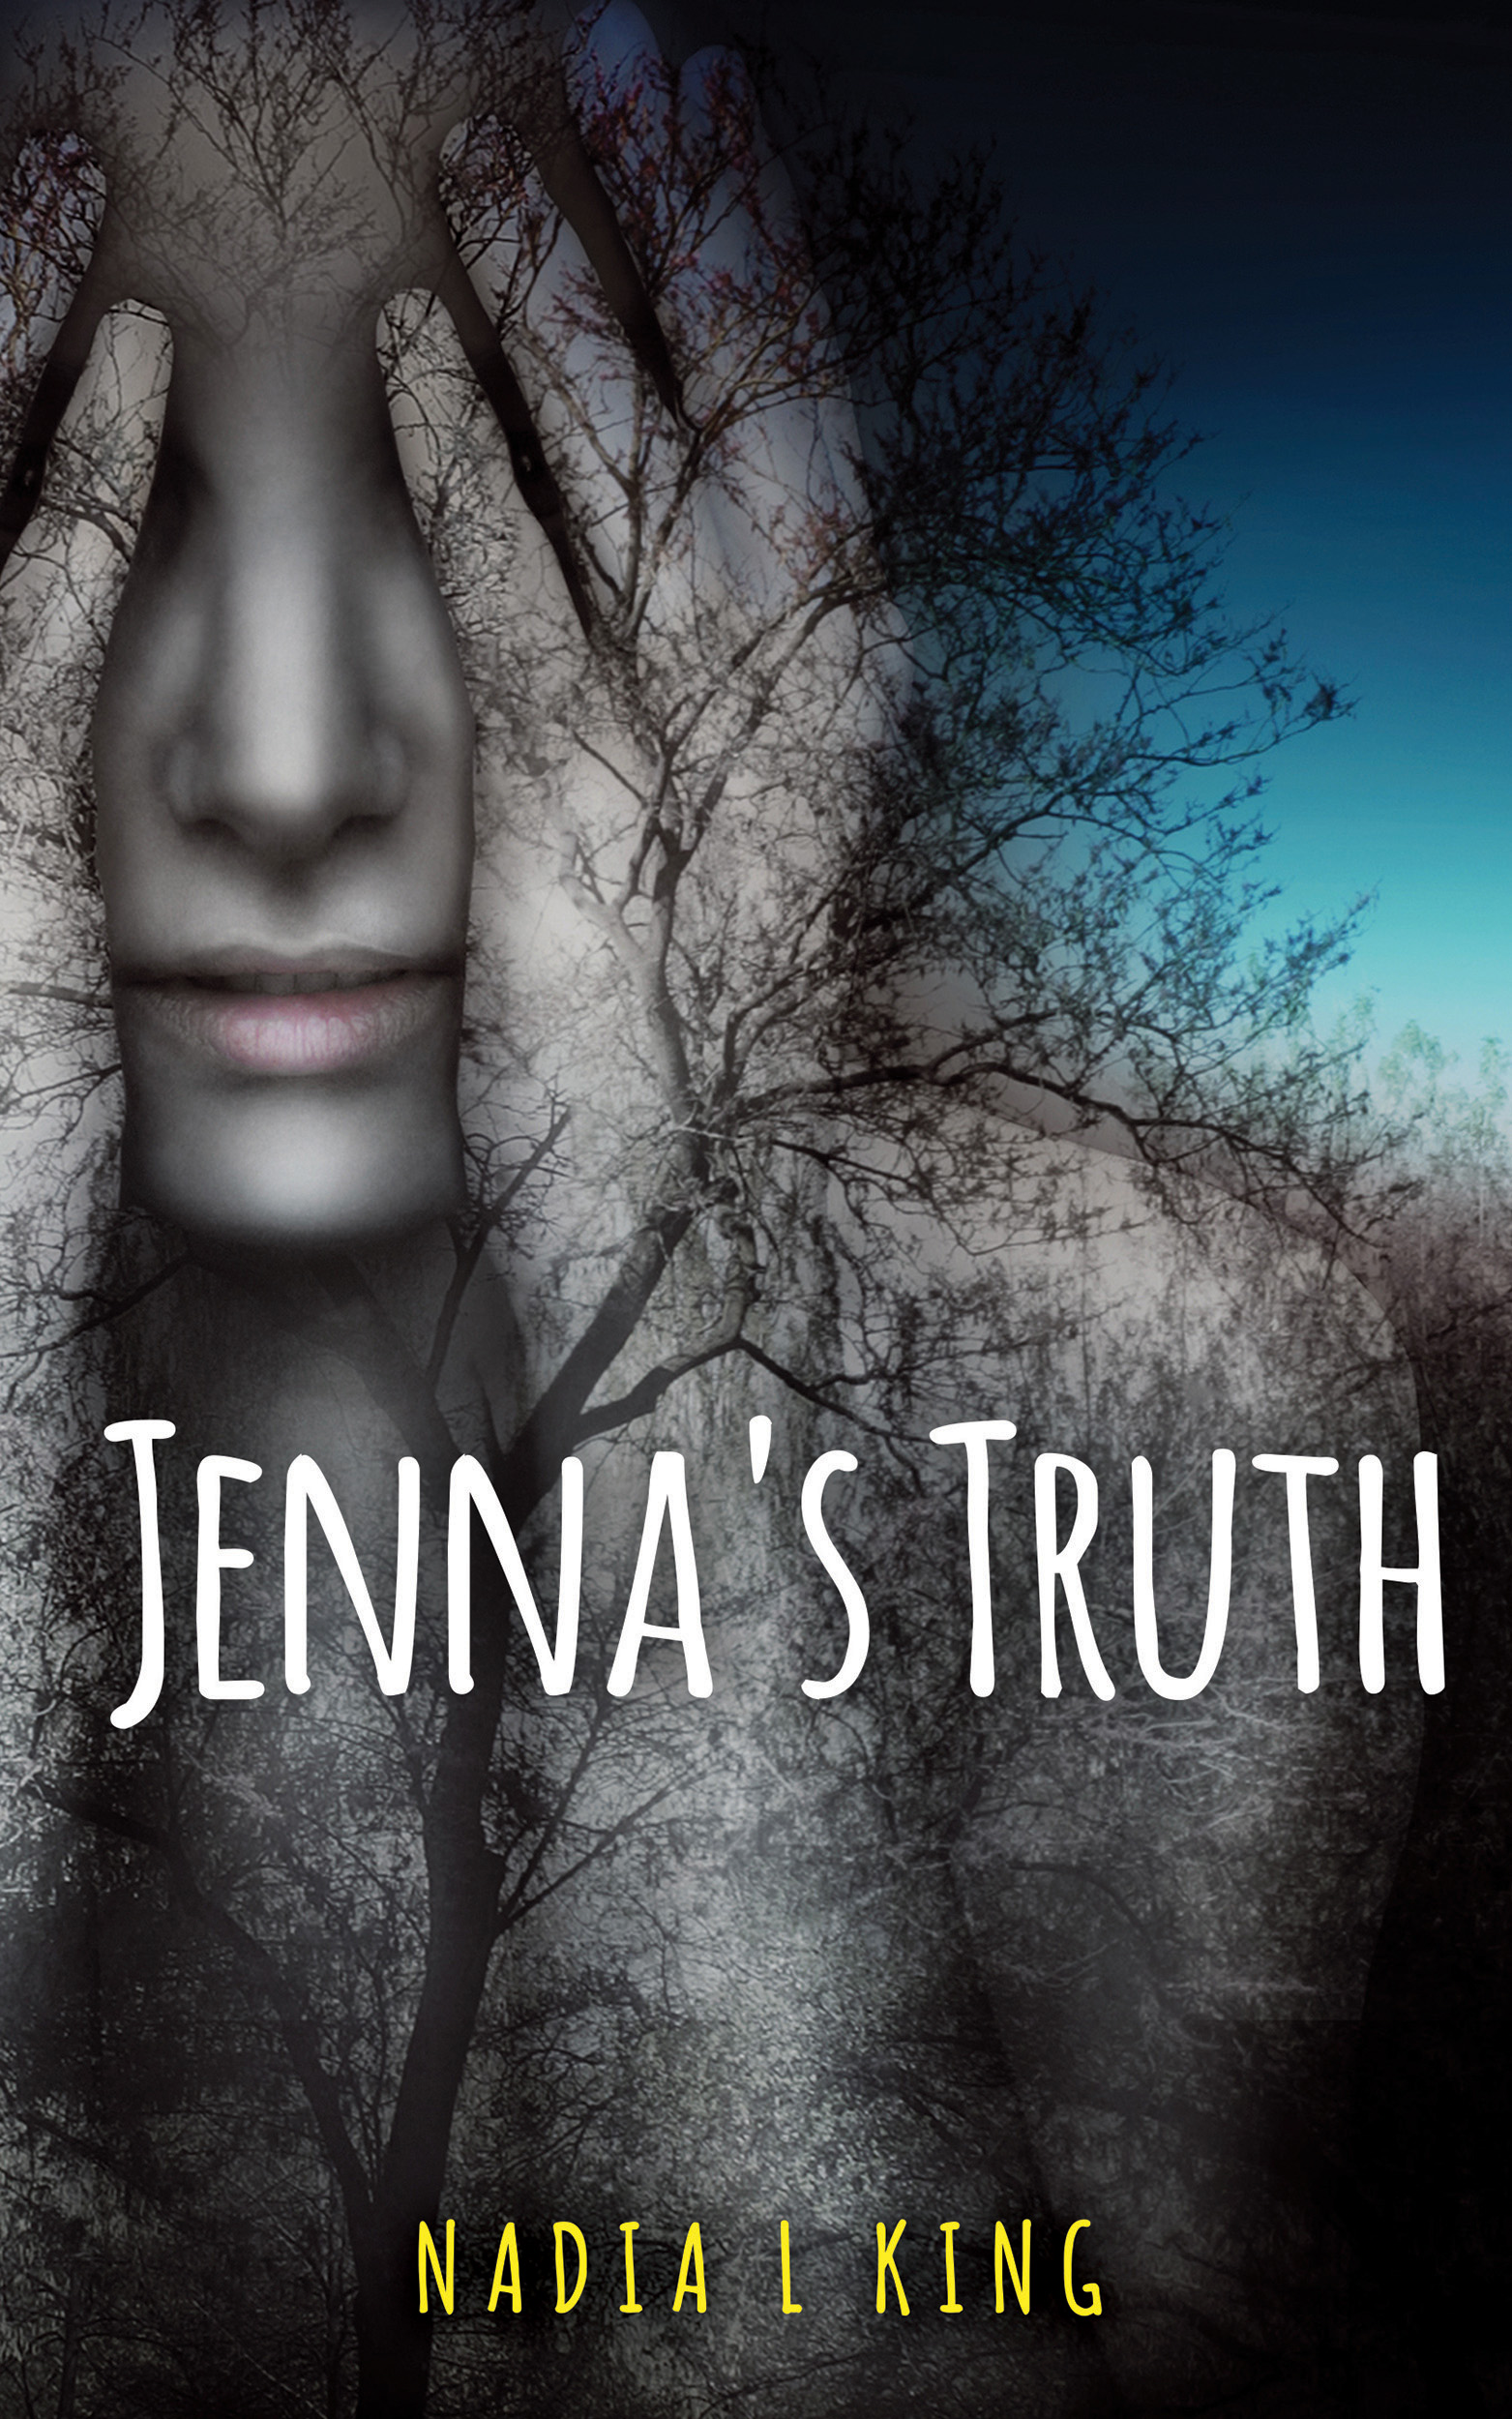 Jenna's Truth by Nadia L. King book cover